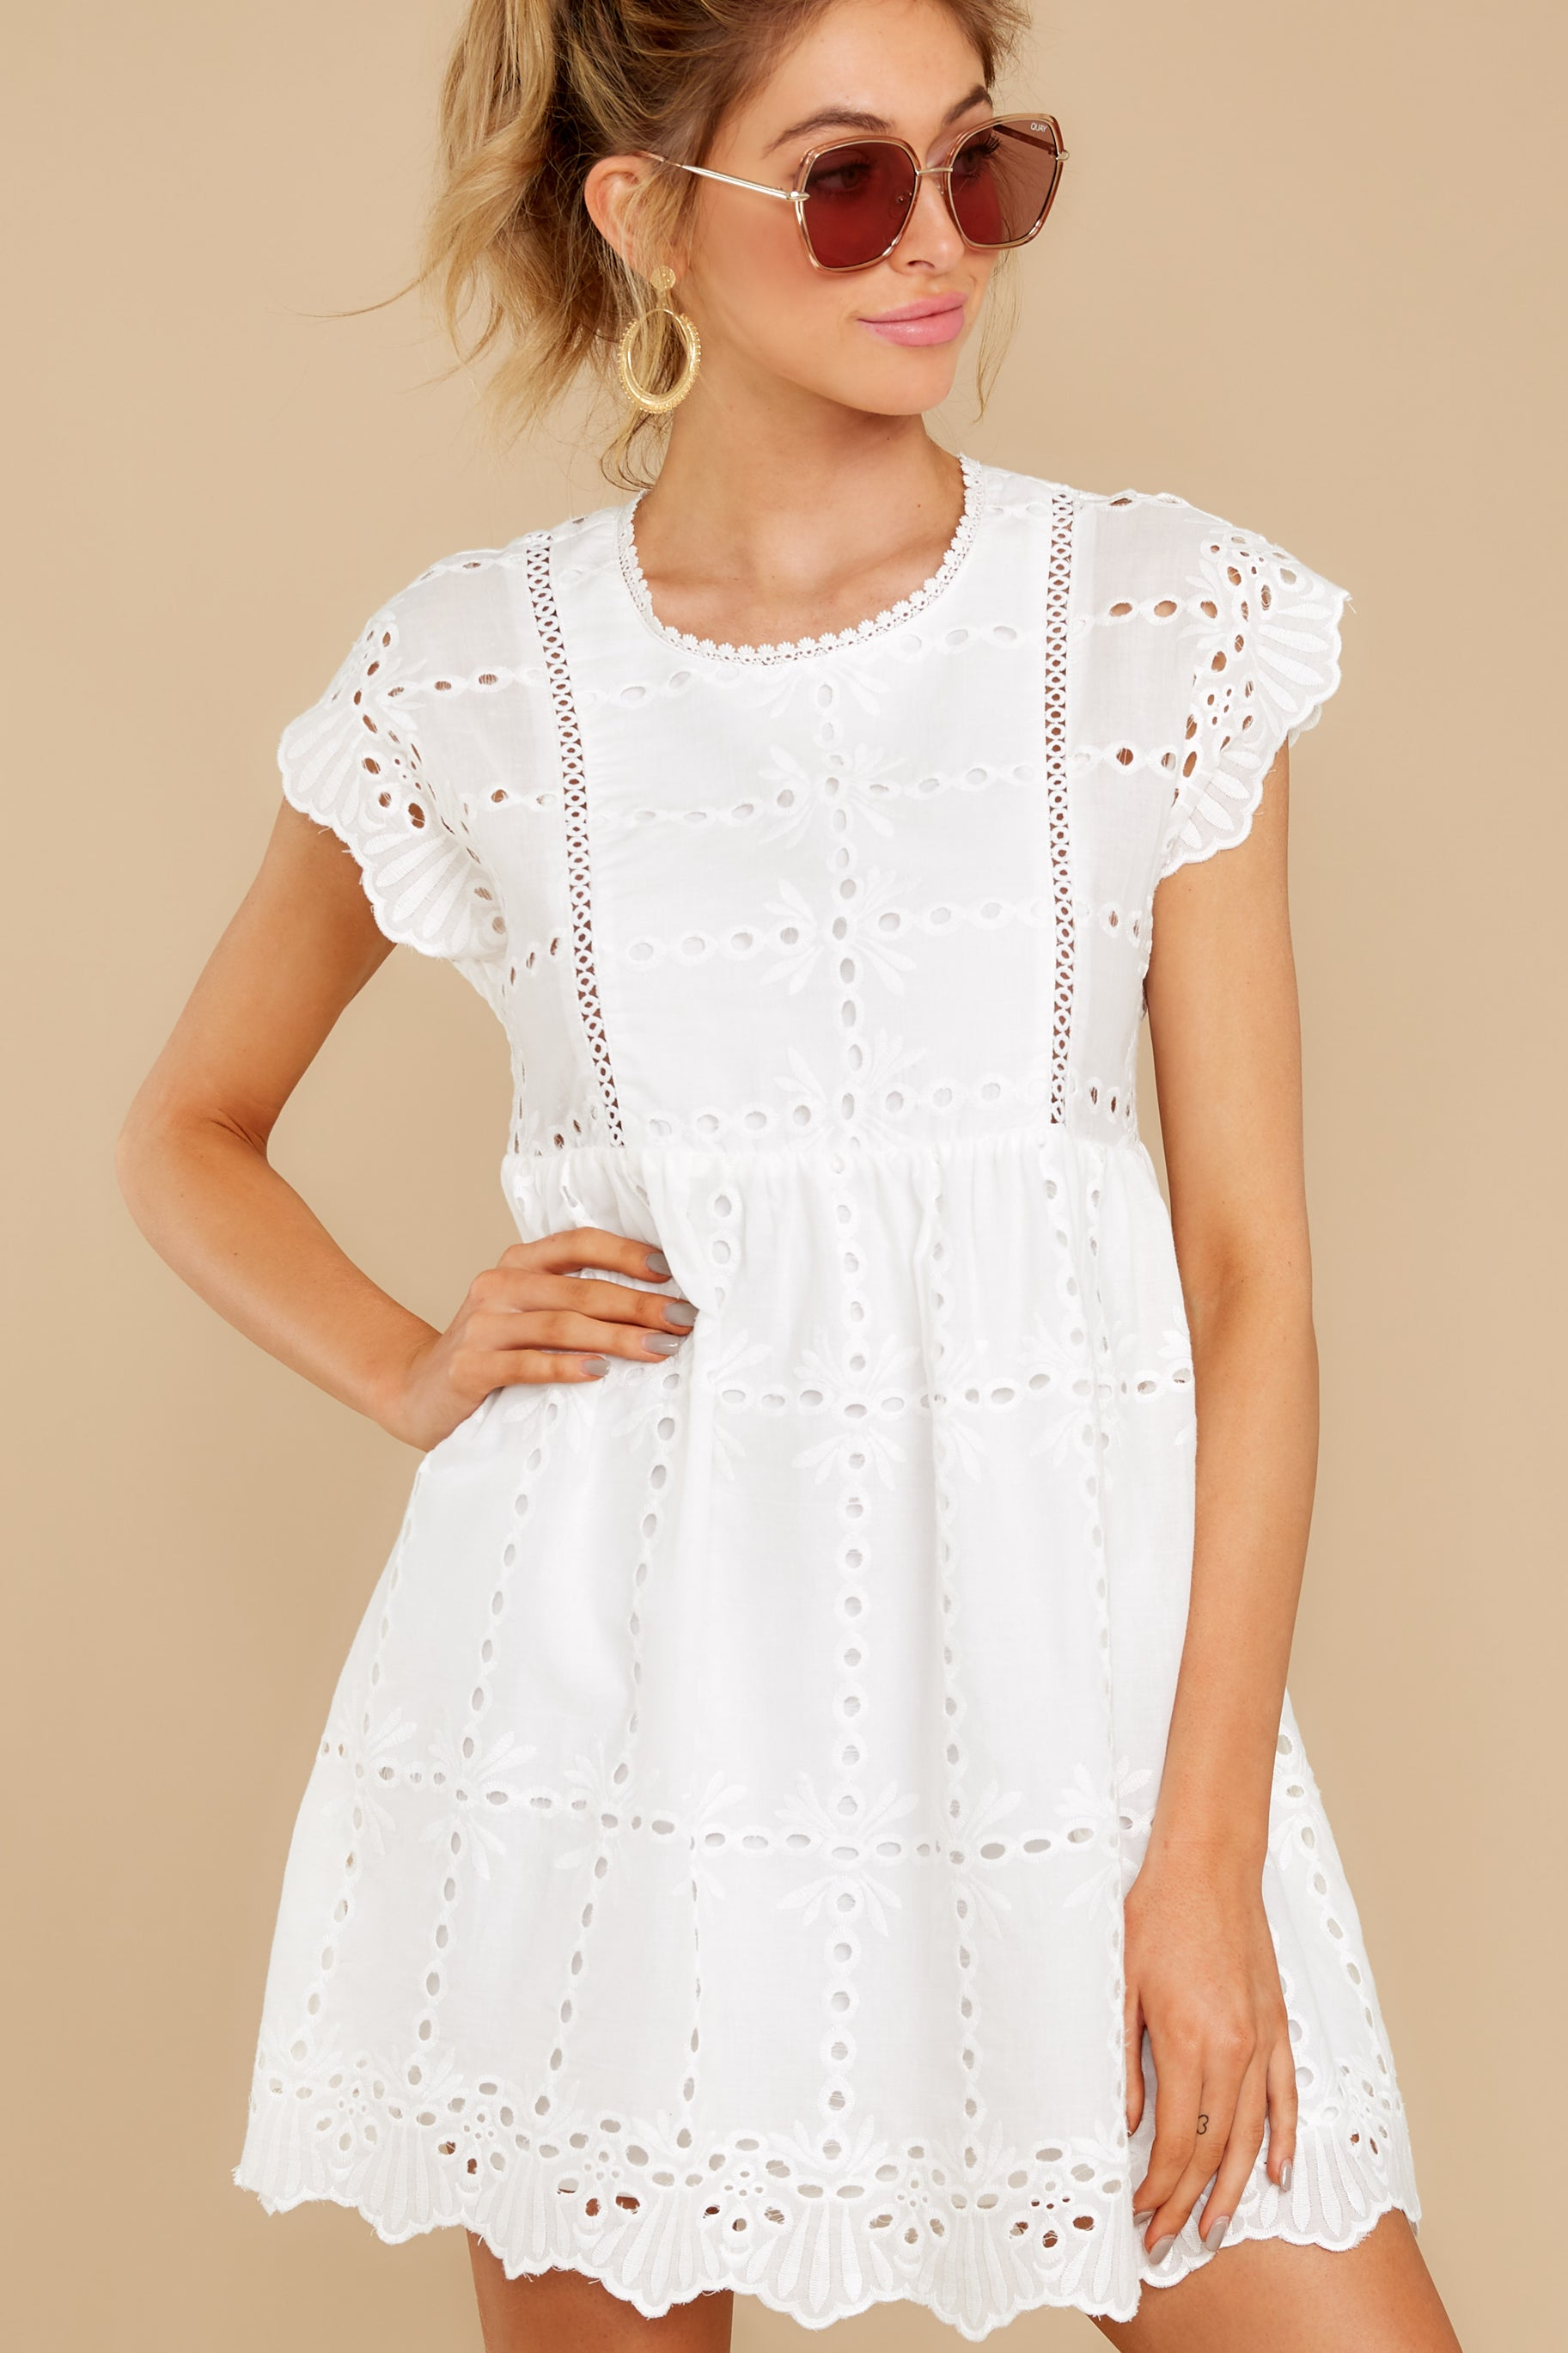 7 Better To Be Sweet White Eyelet Dress at reddress.com